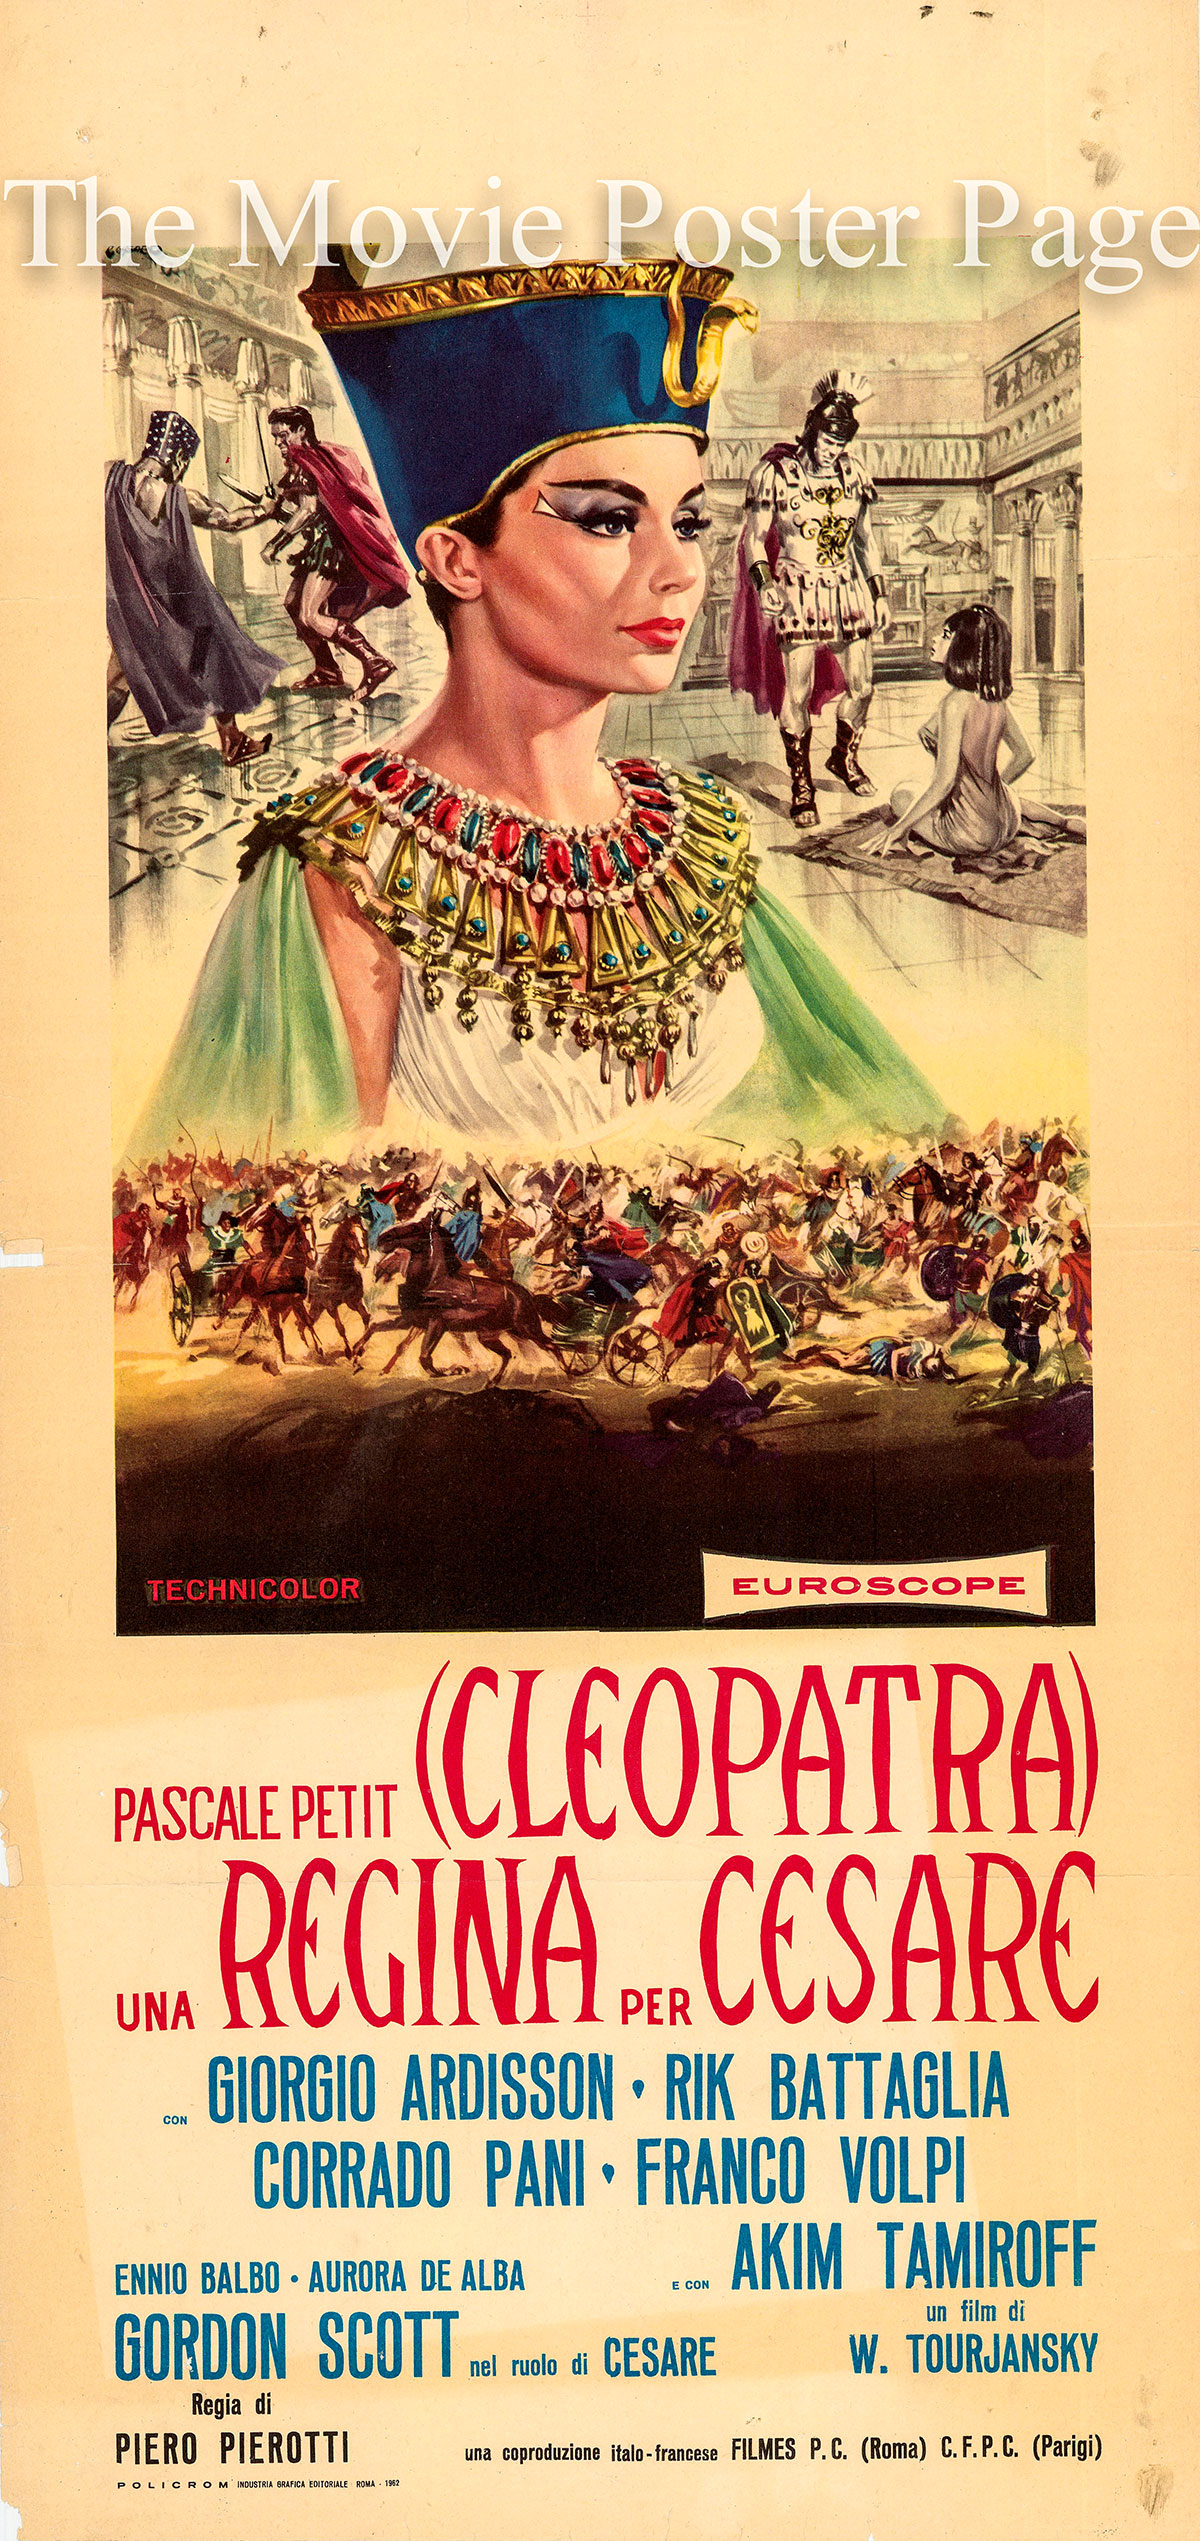 Pictured is an Italian locandina poster for the 1962 Piero Pierotte and Viktor Tourjansky film A Queen for Caesar, starring Pascale Petit as Cleopatra.